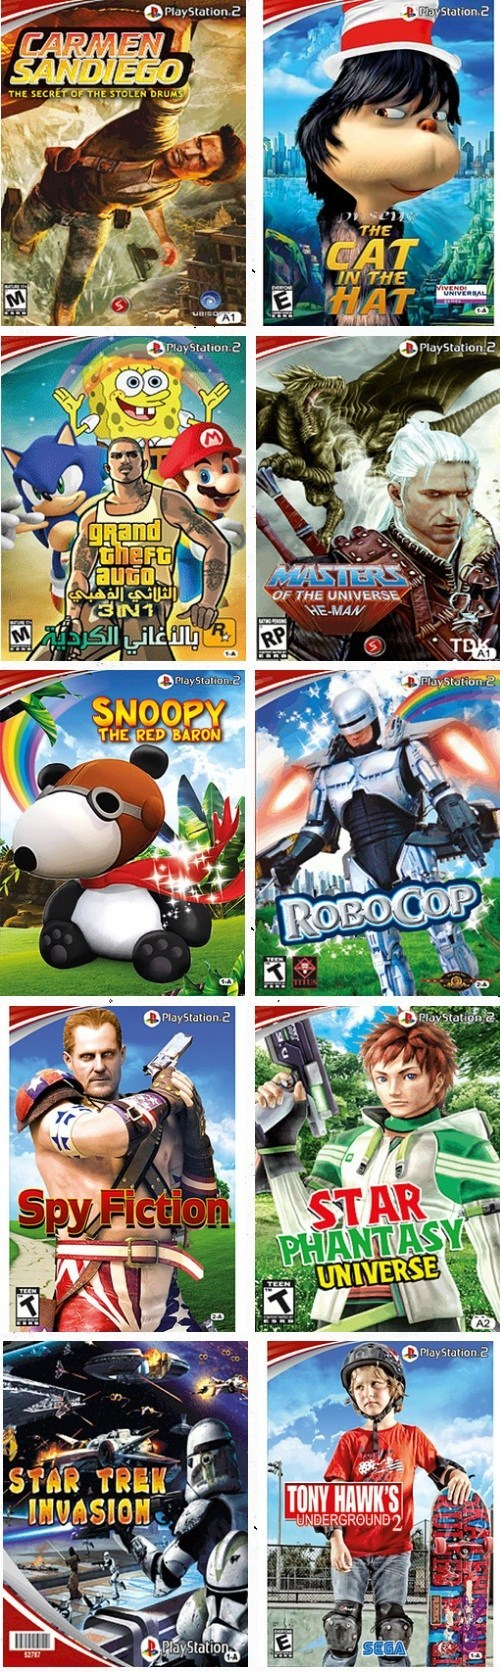 syria,FAIL,game covers,video games,knockoff